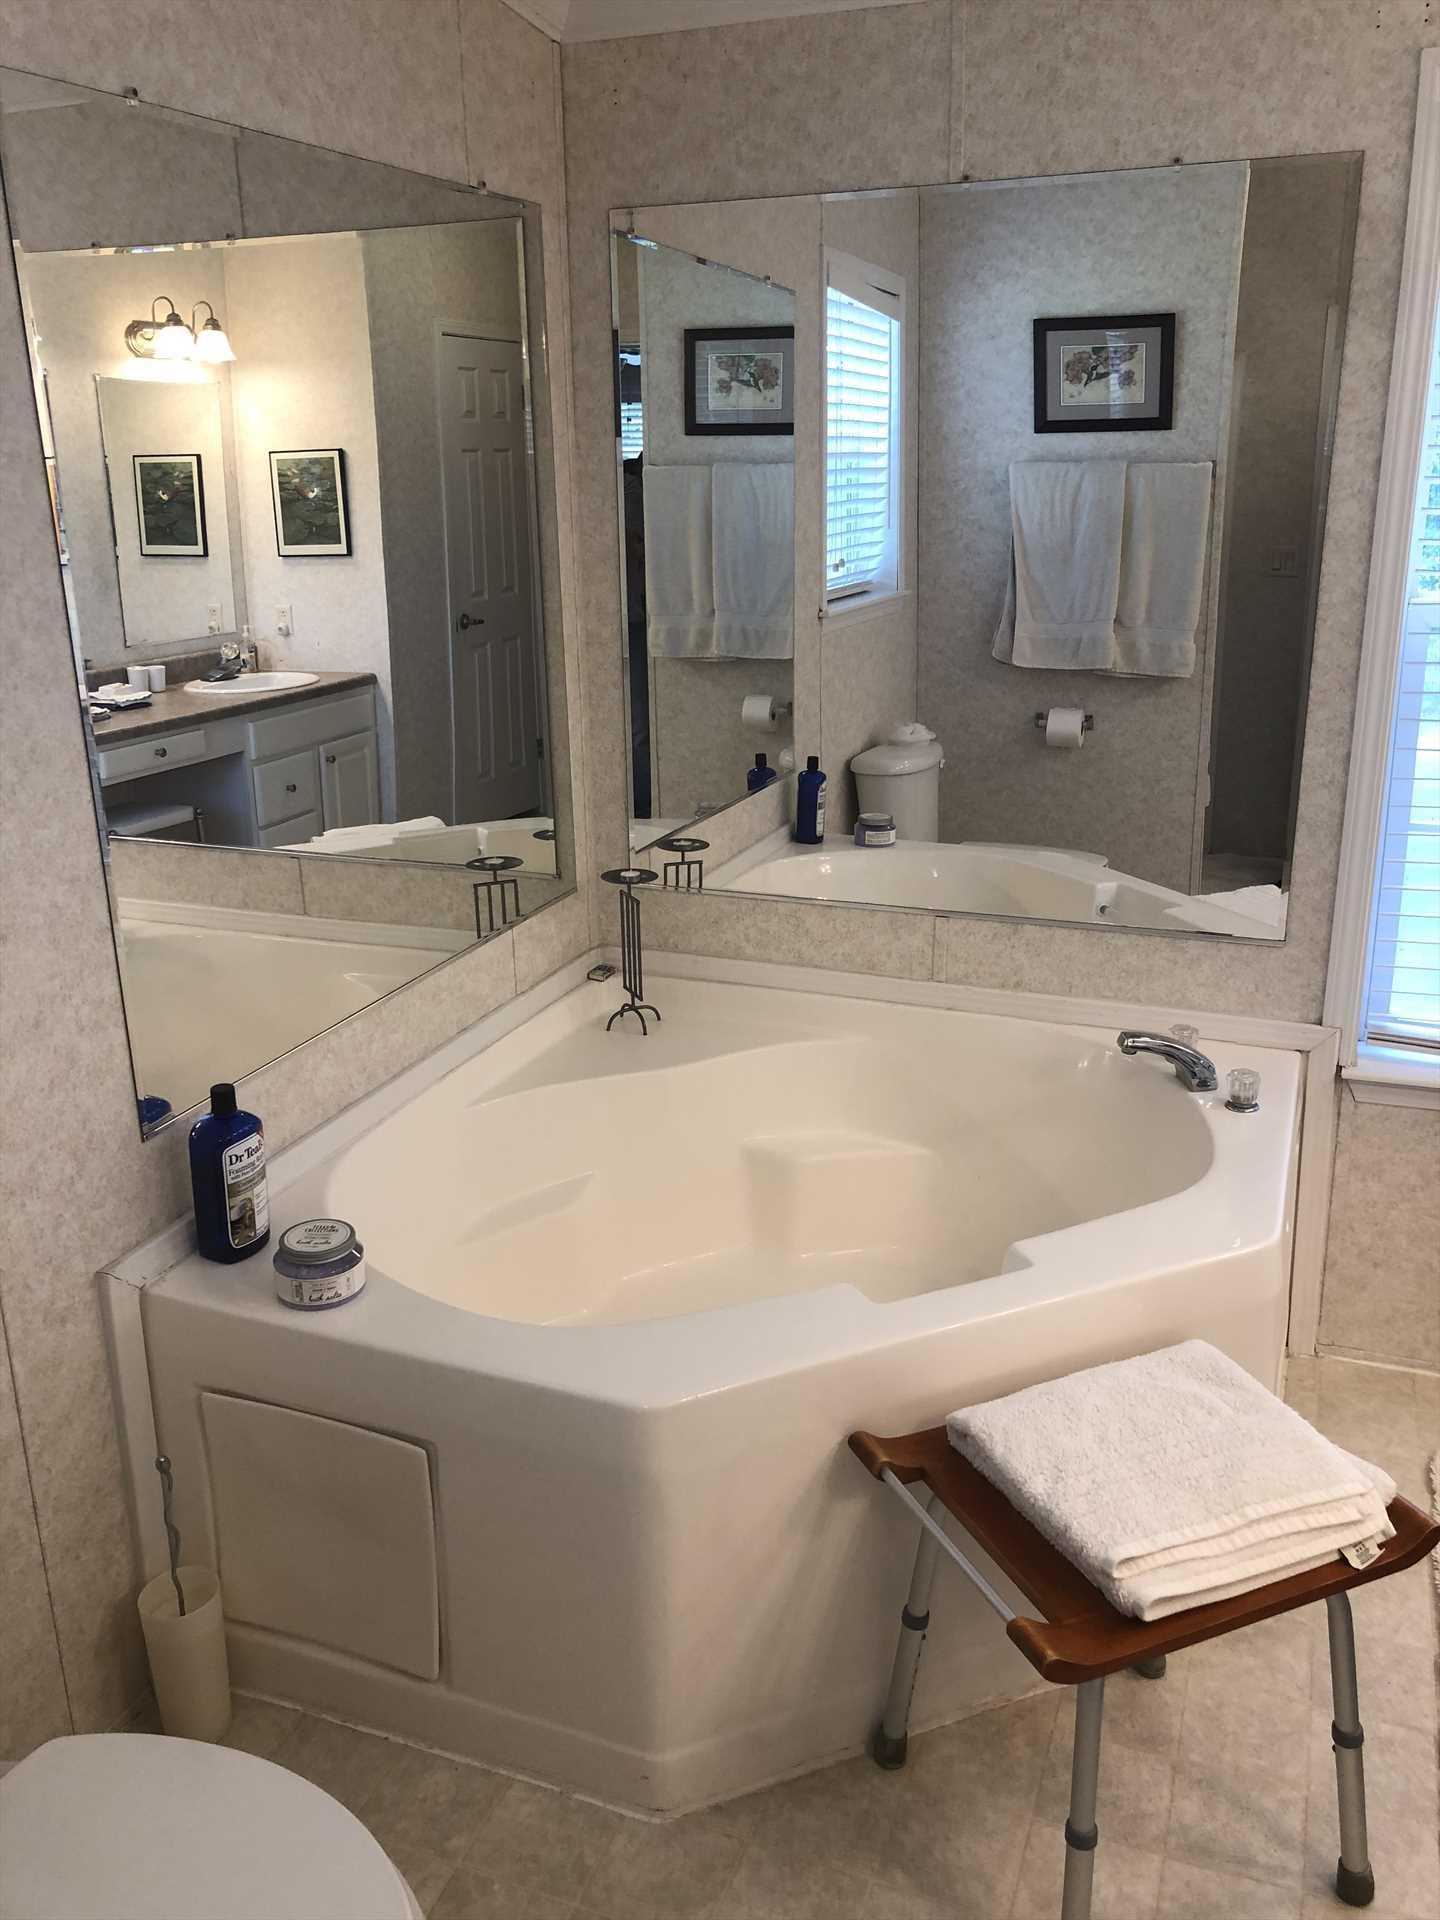 Sink into some soothing suds in the enormous custom tub in the master bath! There's a shower here, too, for quick and easy cleanup.